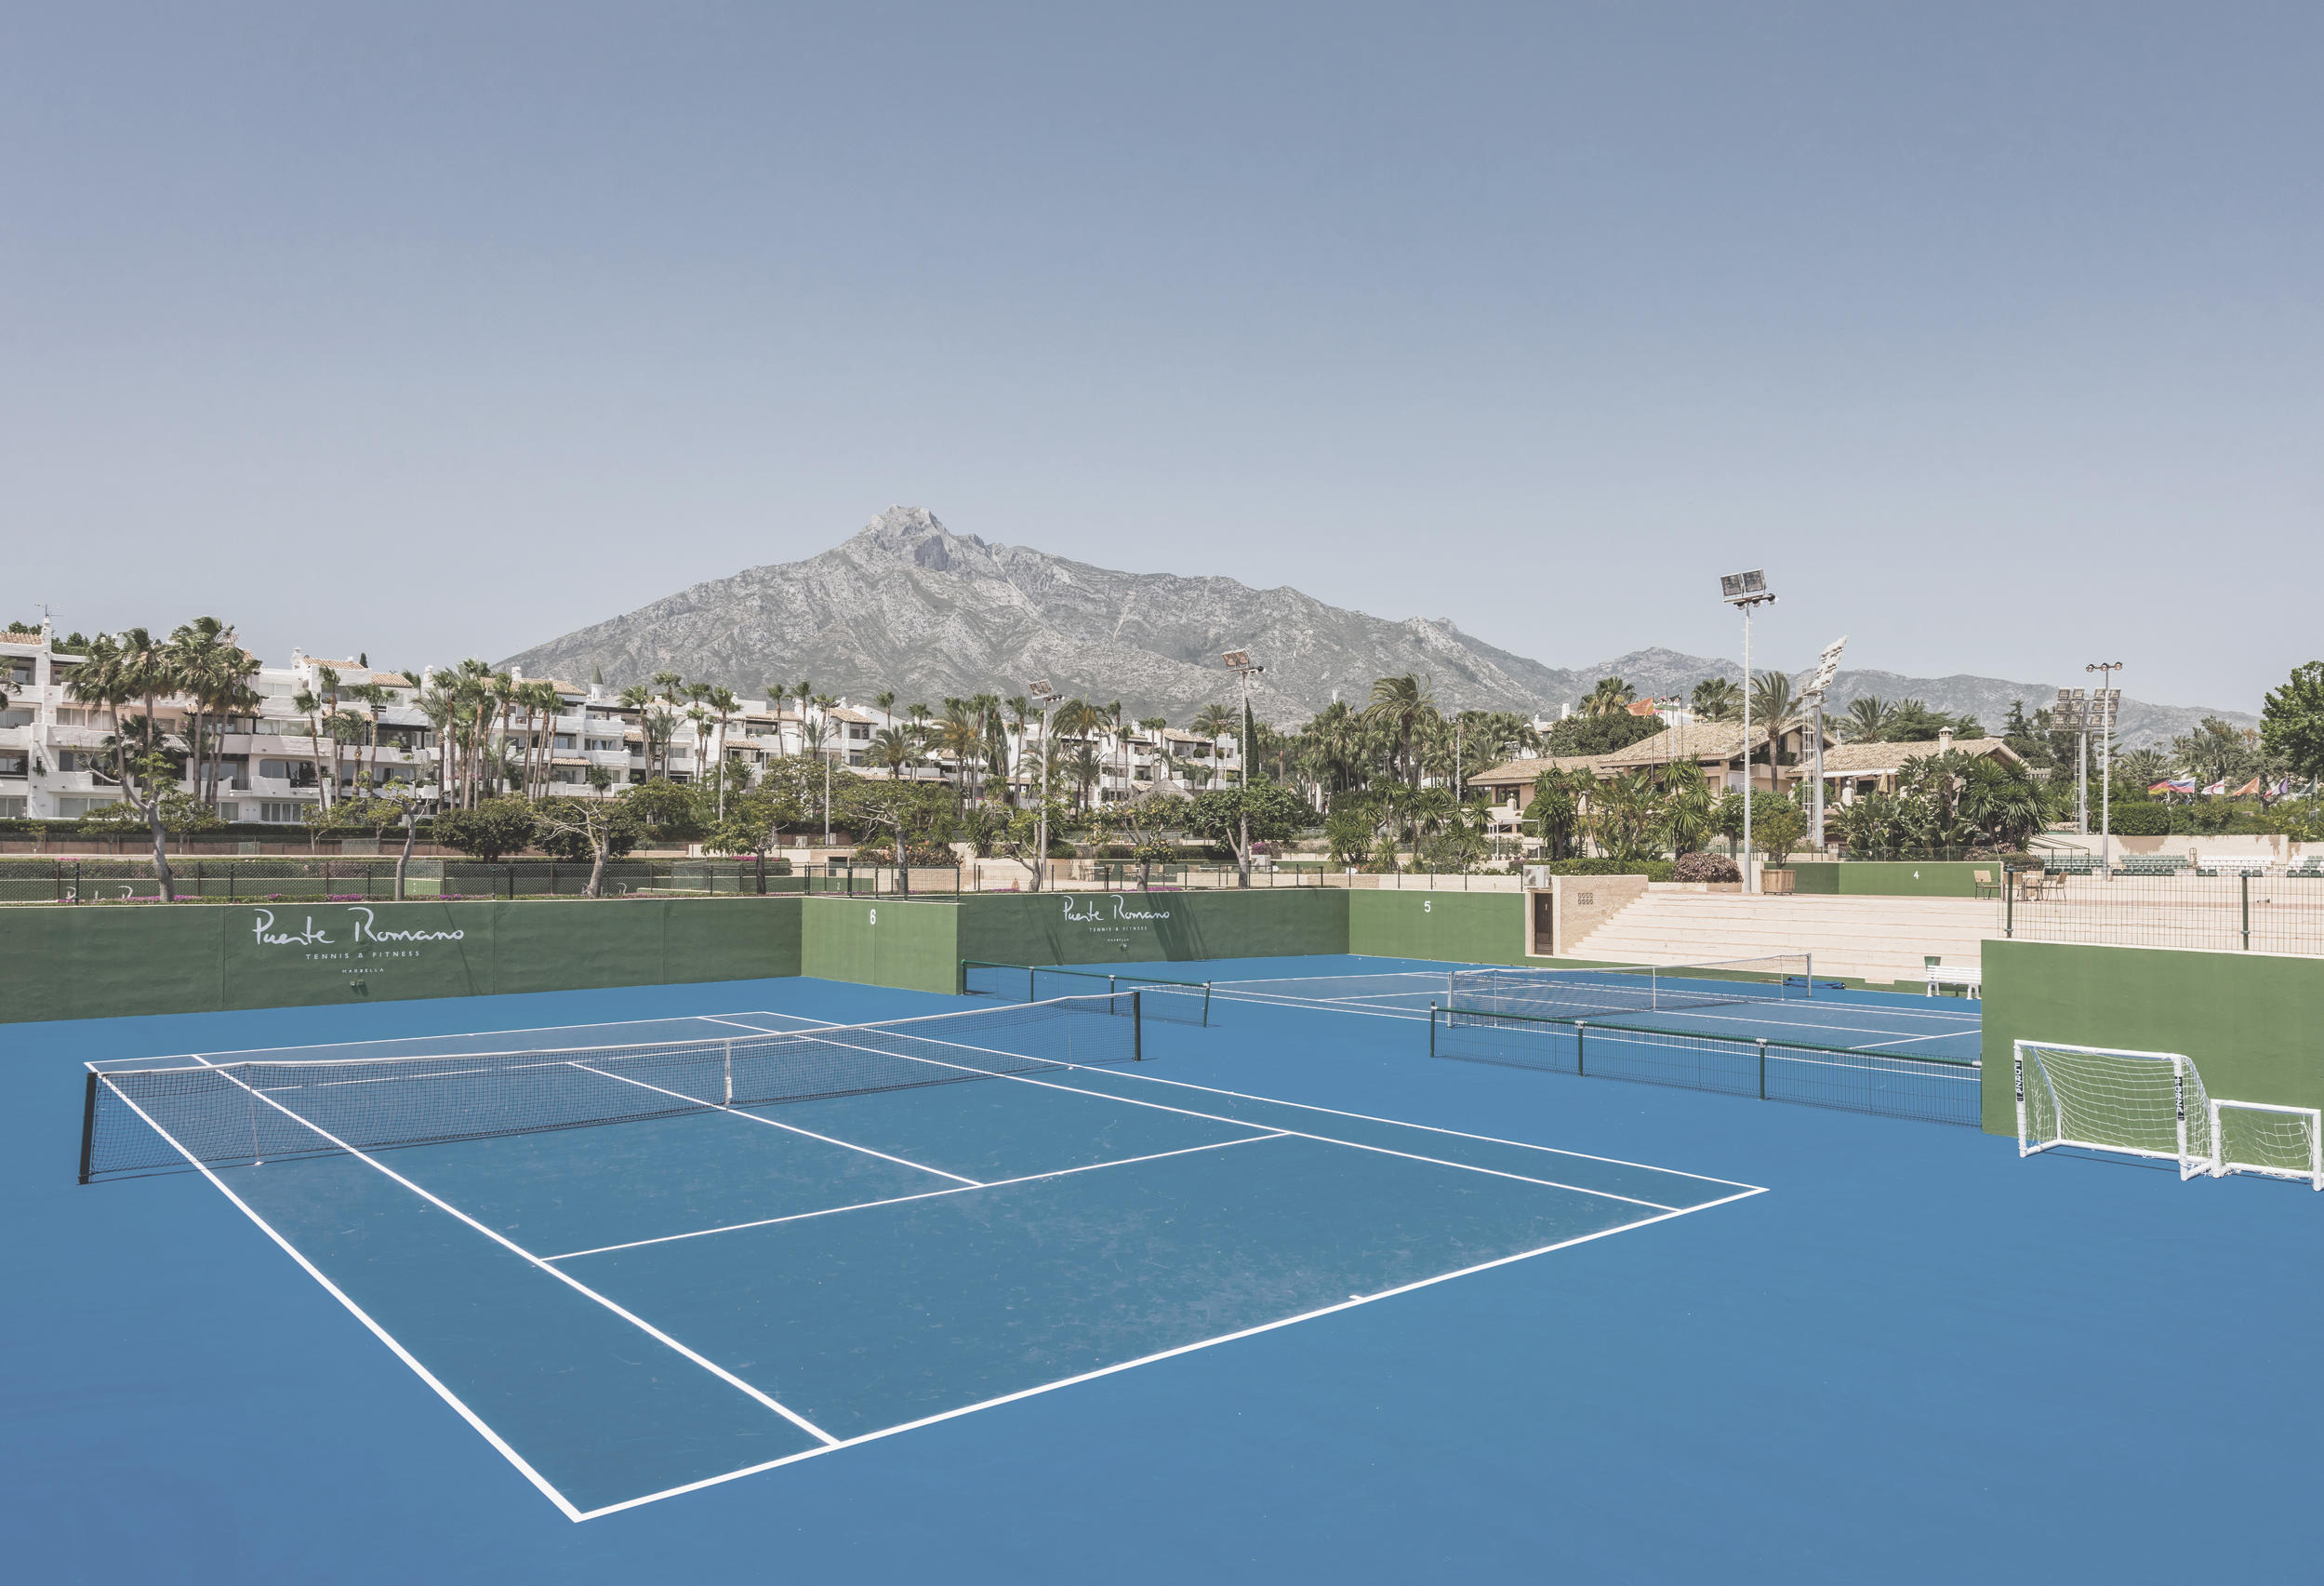 471c867cf9d The Tennis Club of Puente Romano Hotel is considered one of the most  esteemed professional clubs in southern Europe